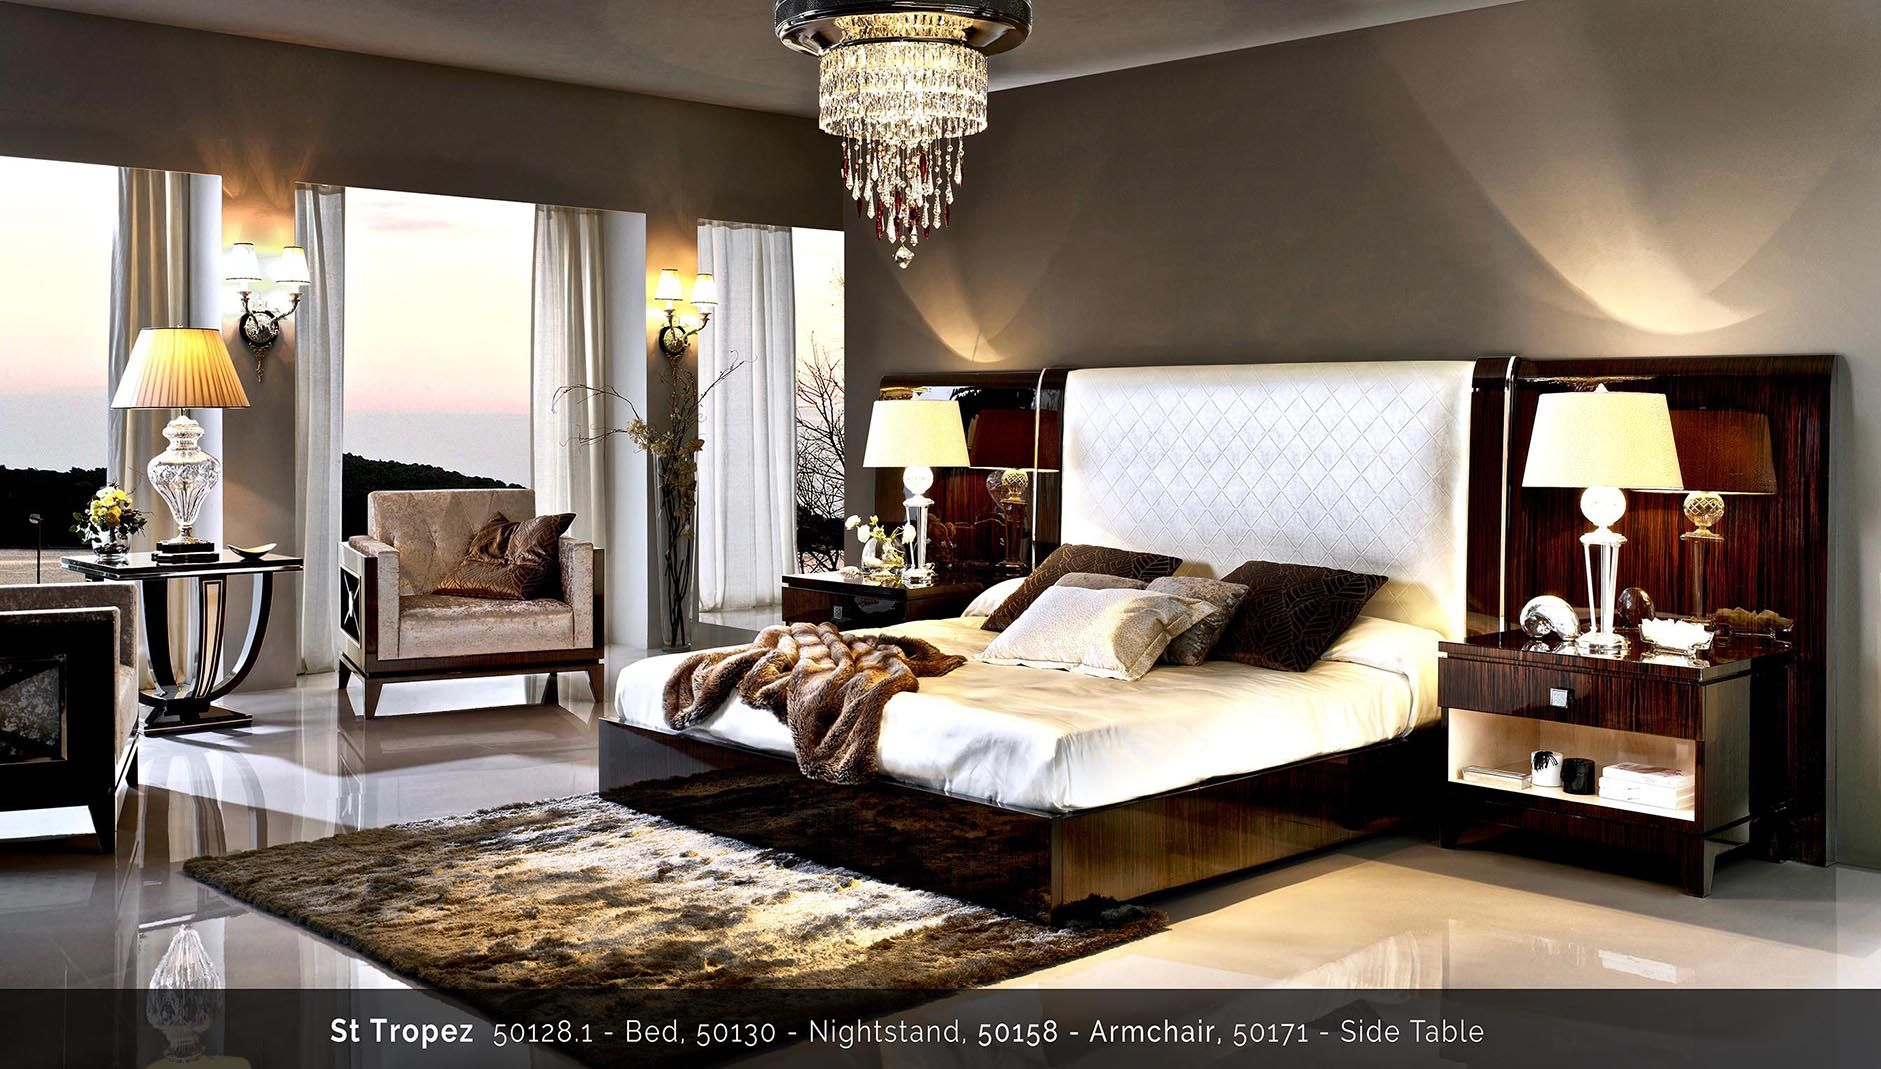 Mariner London Luxurybedrooms Luxury Bedroom Millionaire